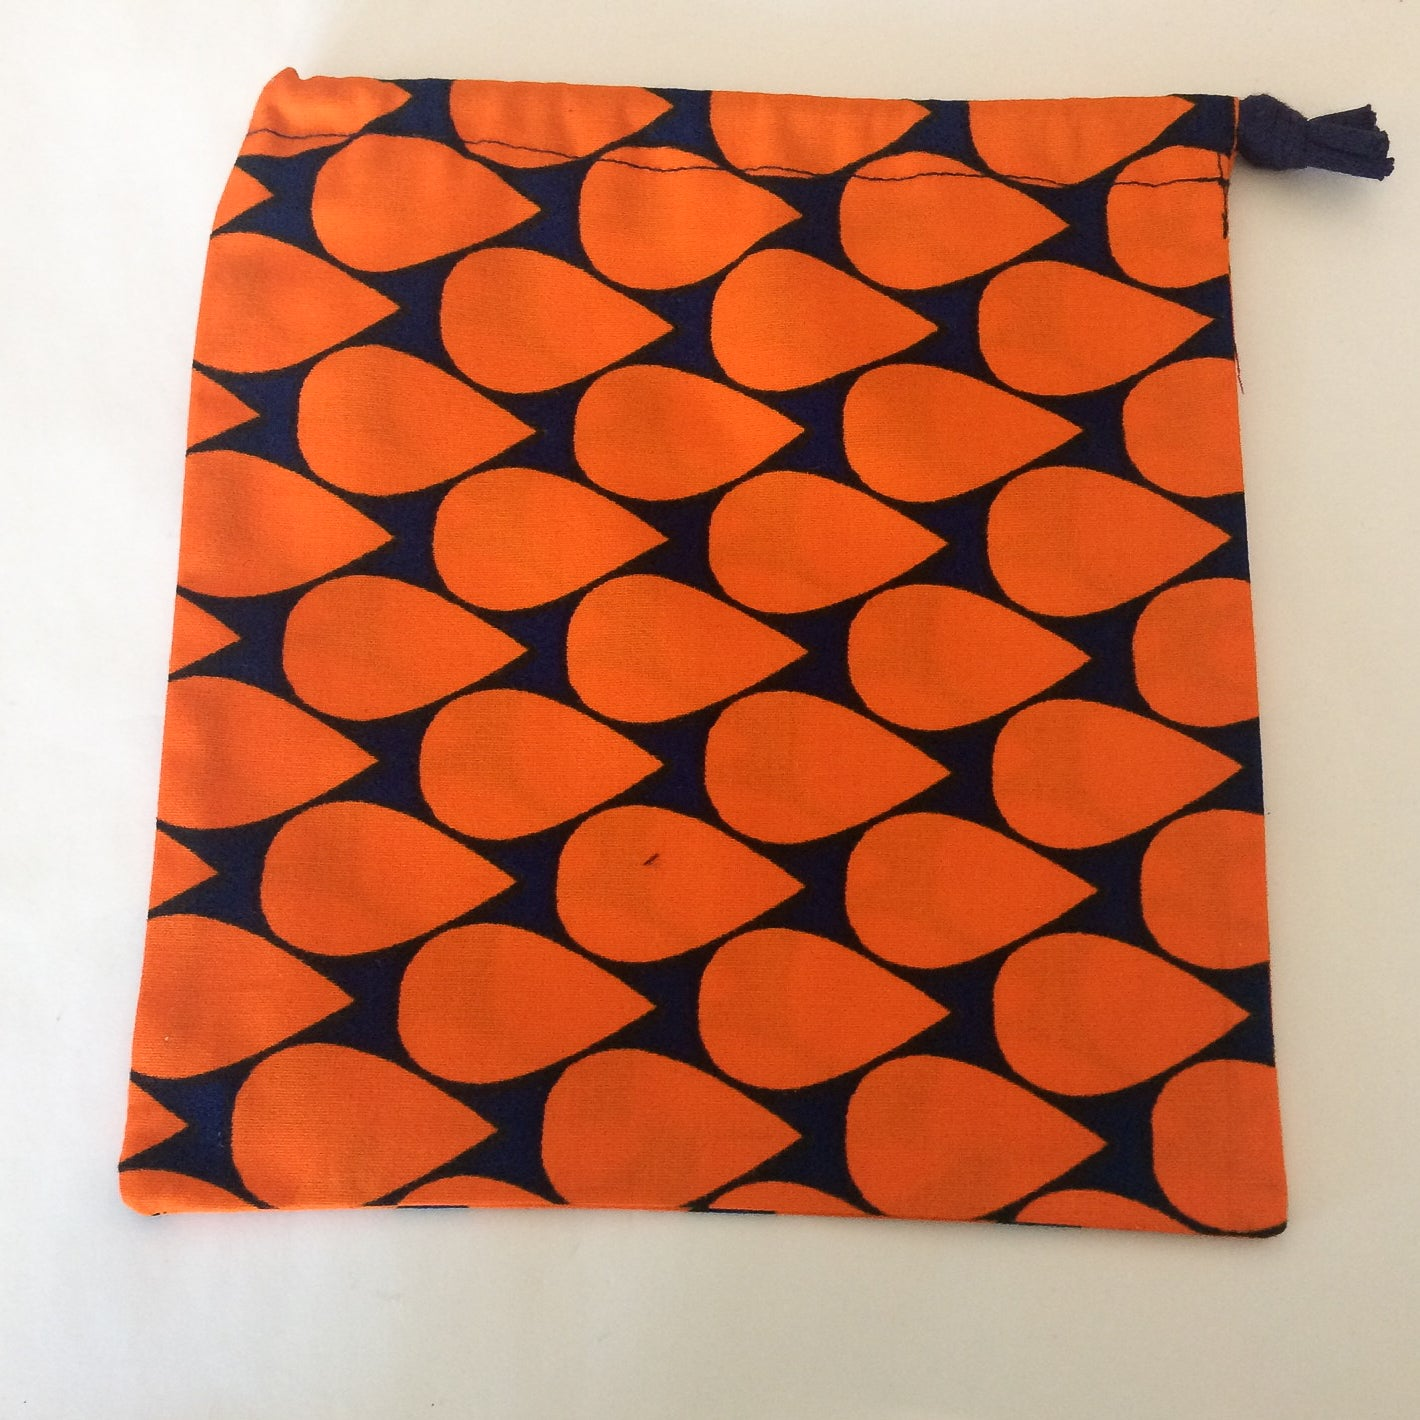 Drawstring bag - Orange tear drops, large